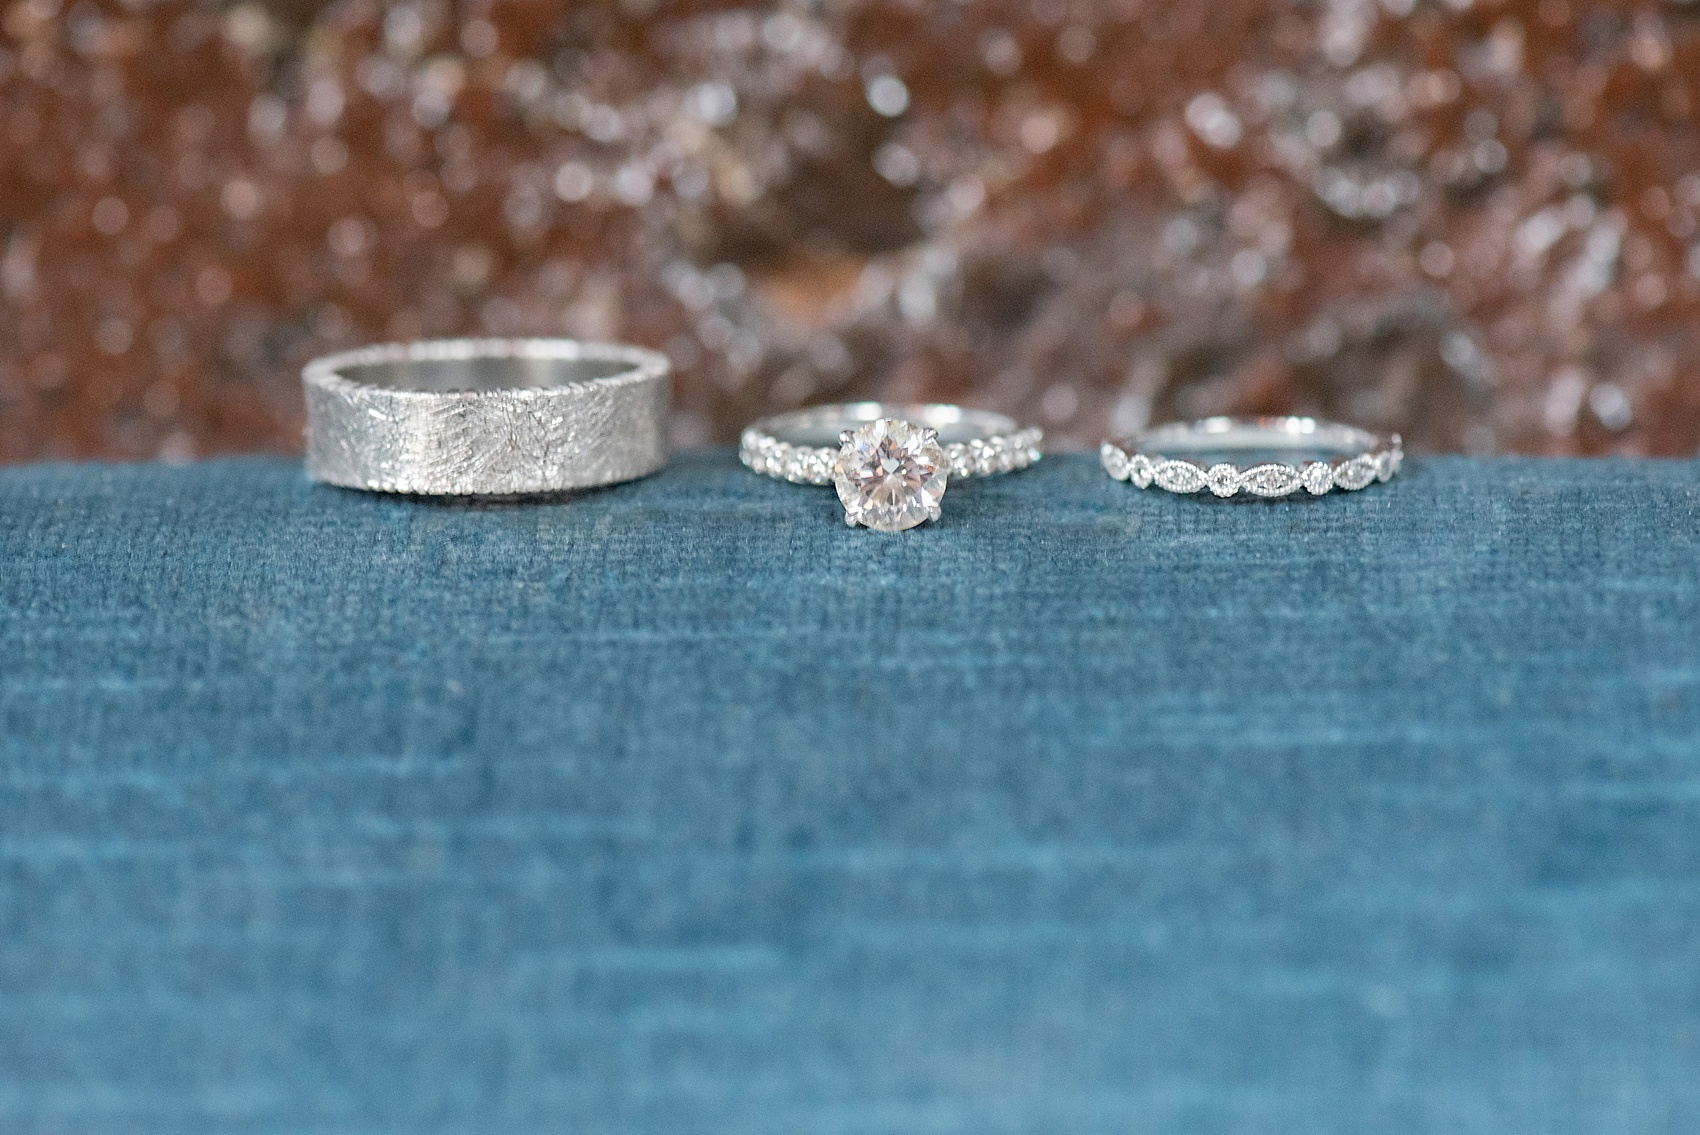 My Moon Brooklyn intimate wedding ring photos on blue velvet. Photos by Mikkel Paige Photography.